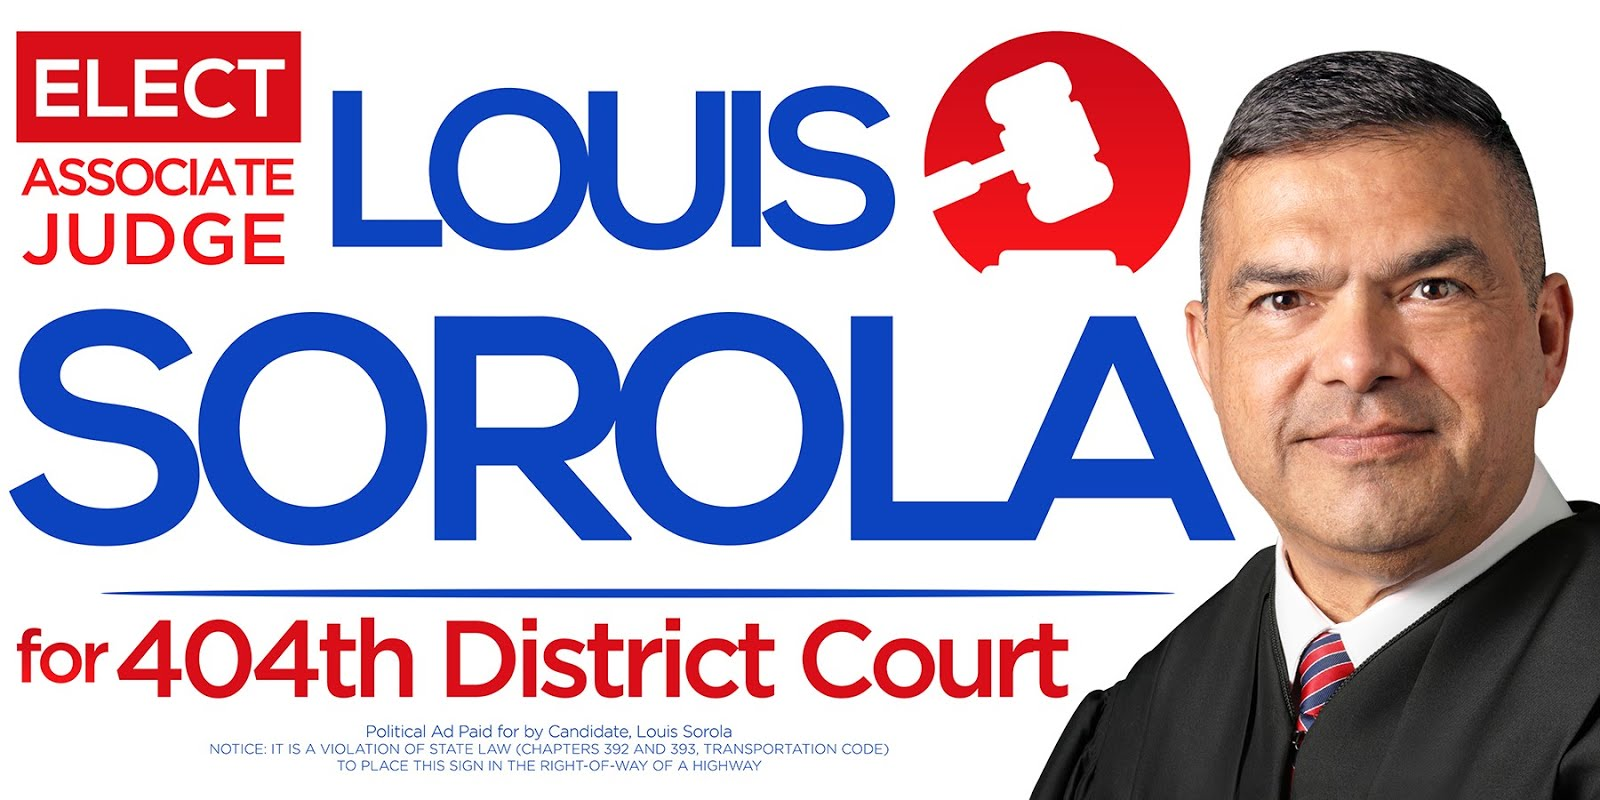 ELECT LOUIS TO THE 404TH